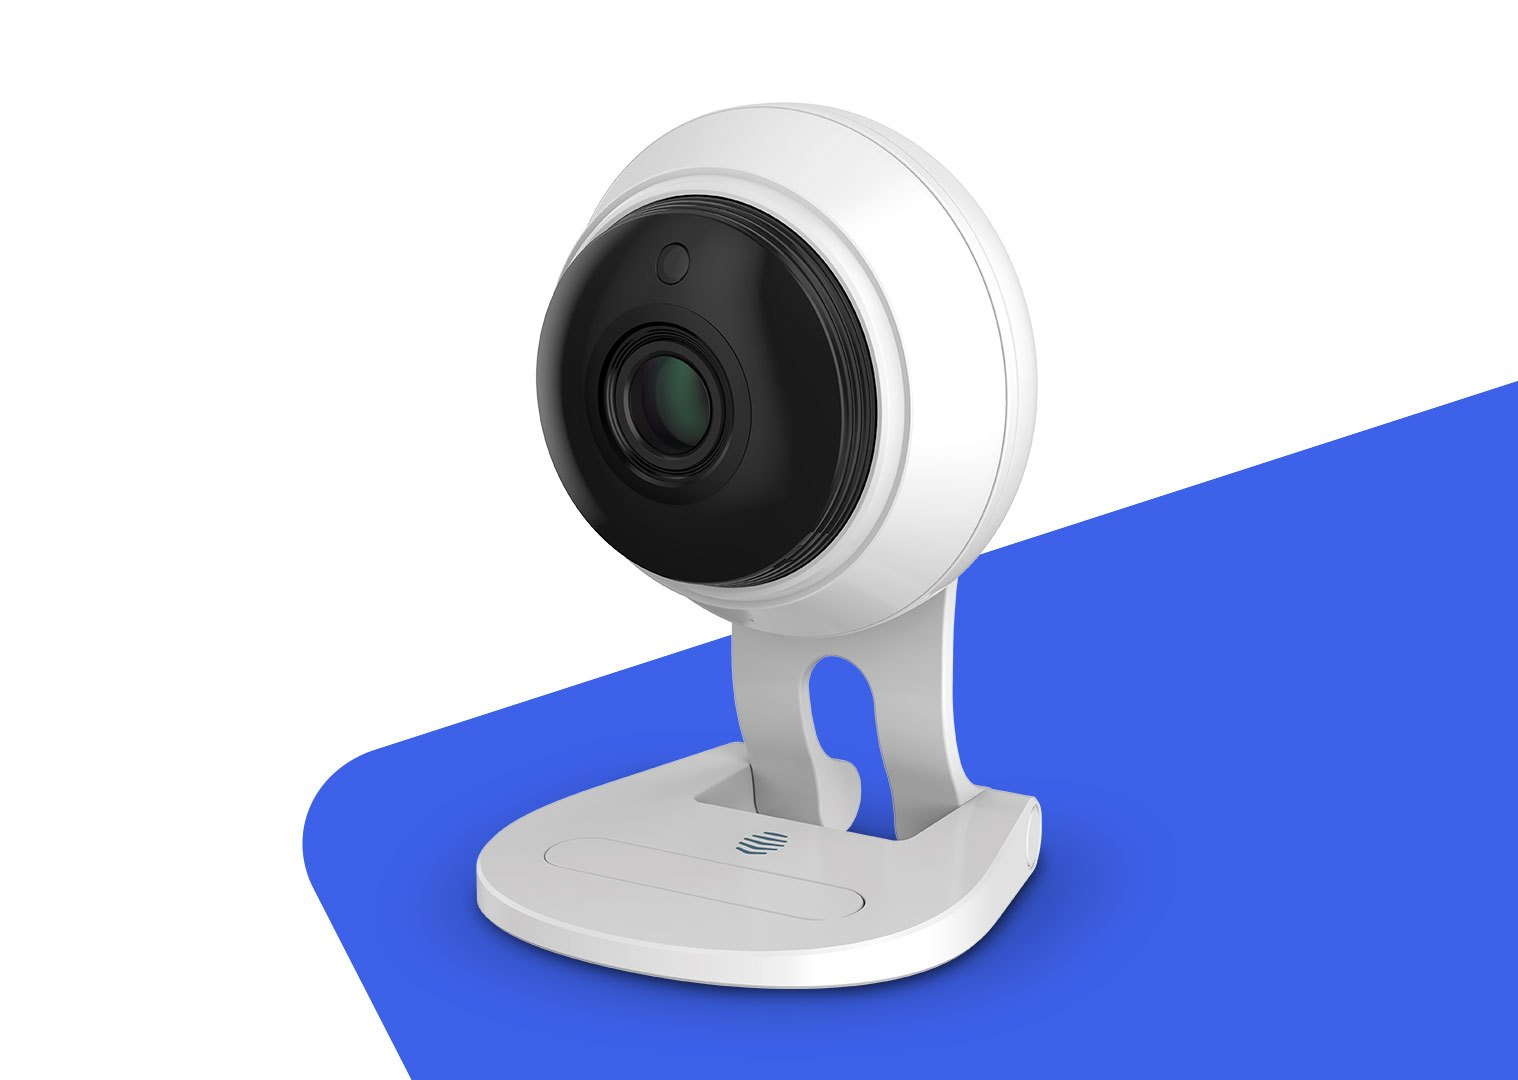 Introducing the Hive Home Check Plan with Hive Camera | Hive Blog